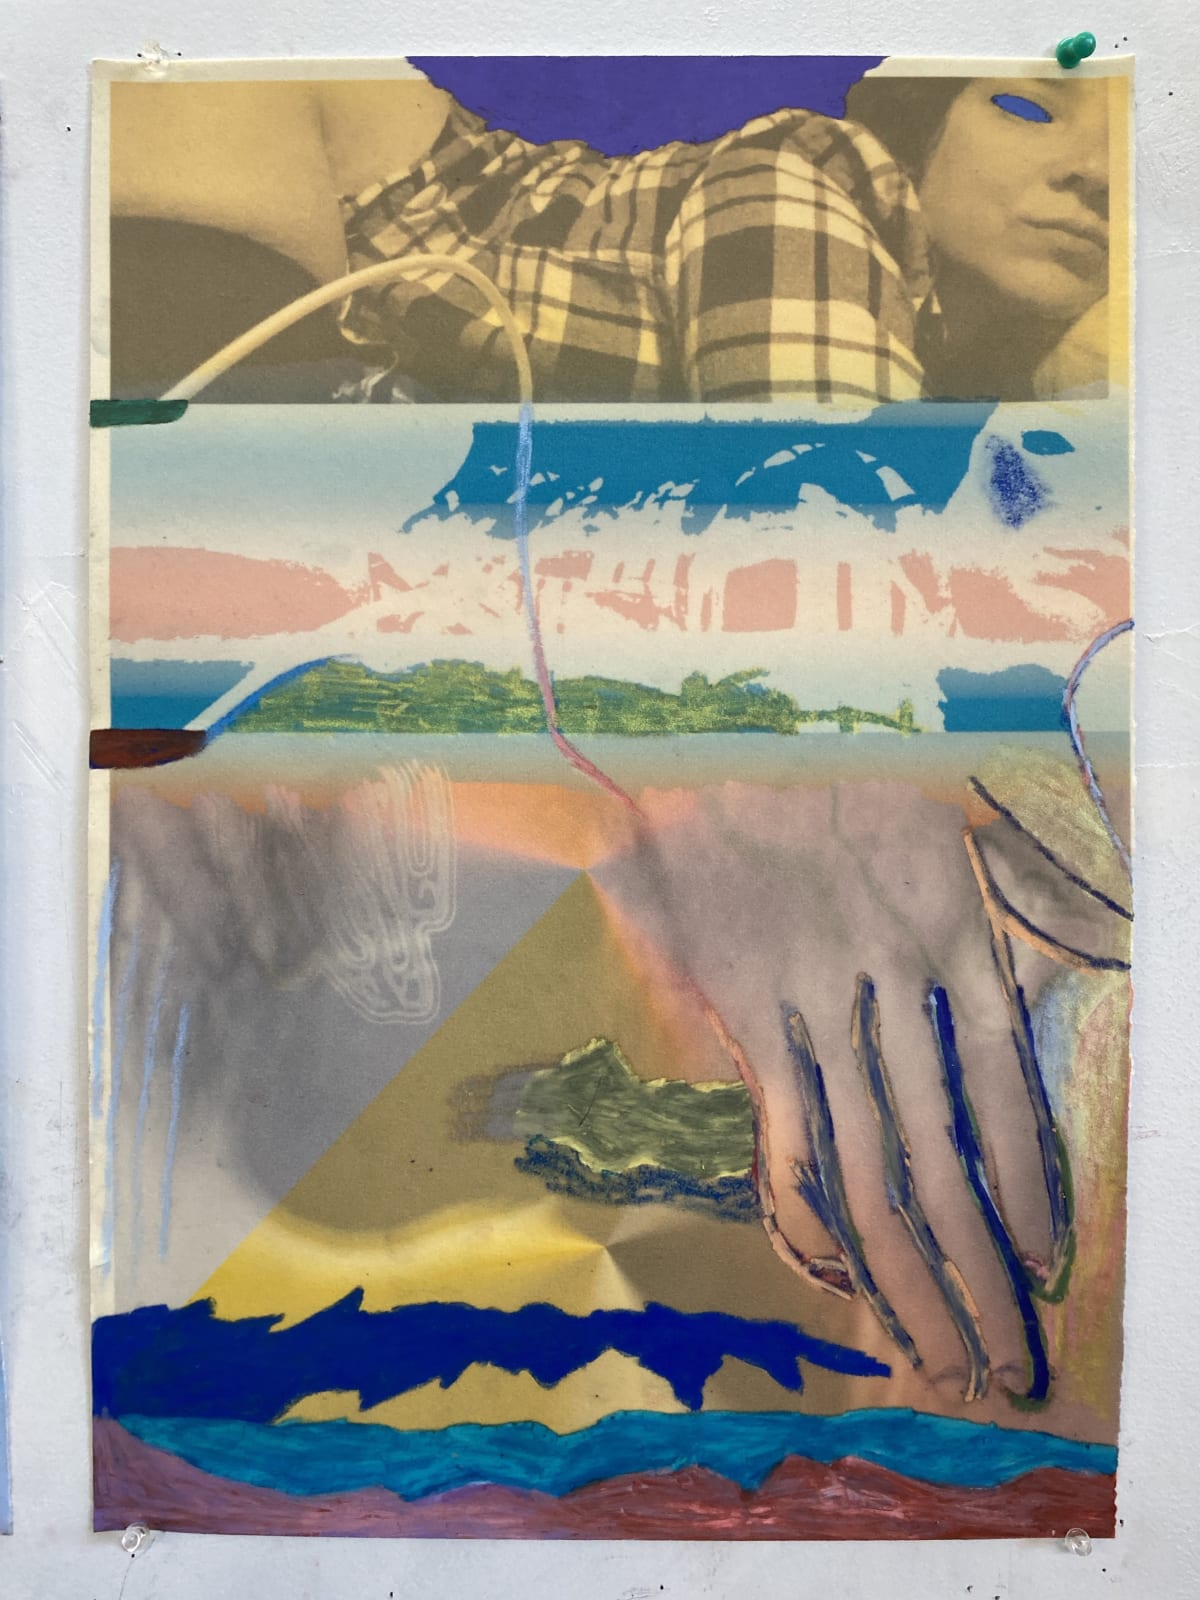 Gaby Collins-Fernandez Richter Scale Selfie, 2020 Crayons and digital photocollage on flocked paper 19 x 13.5 in 48.3 x 34.3 cm